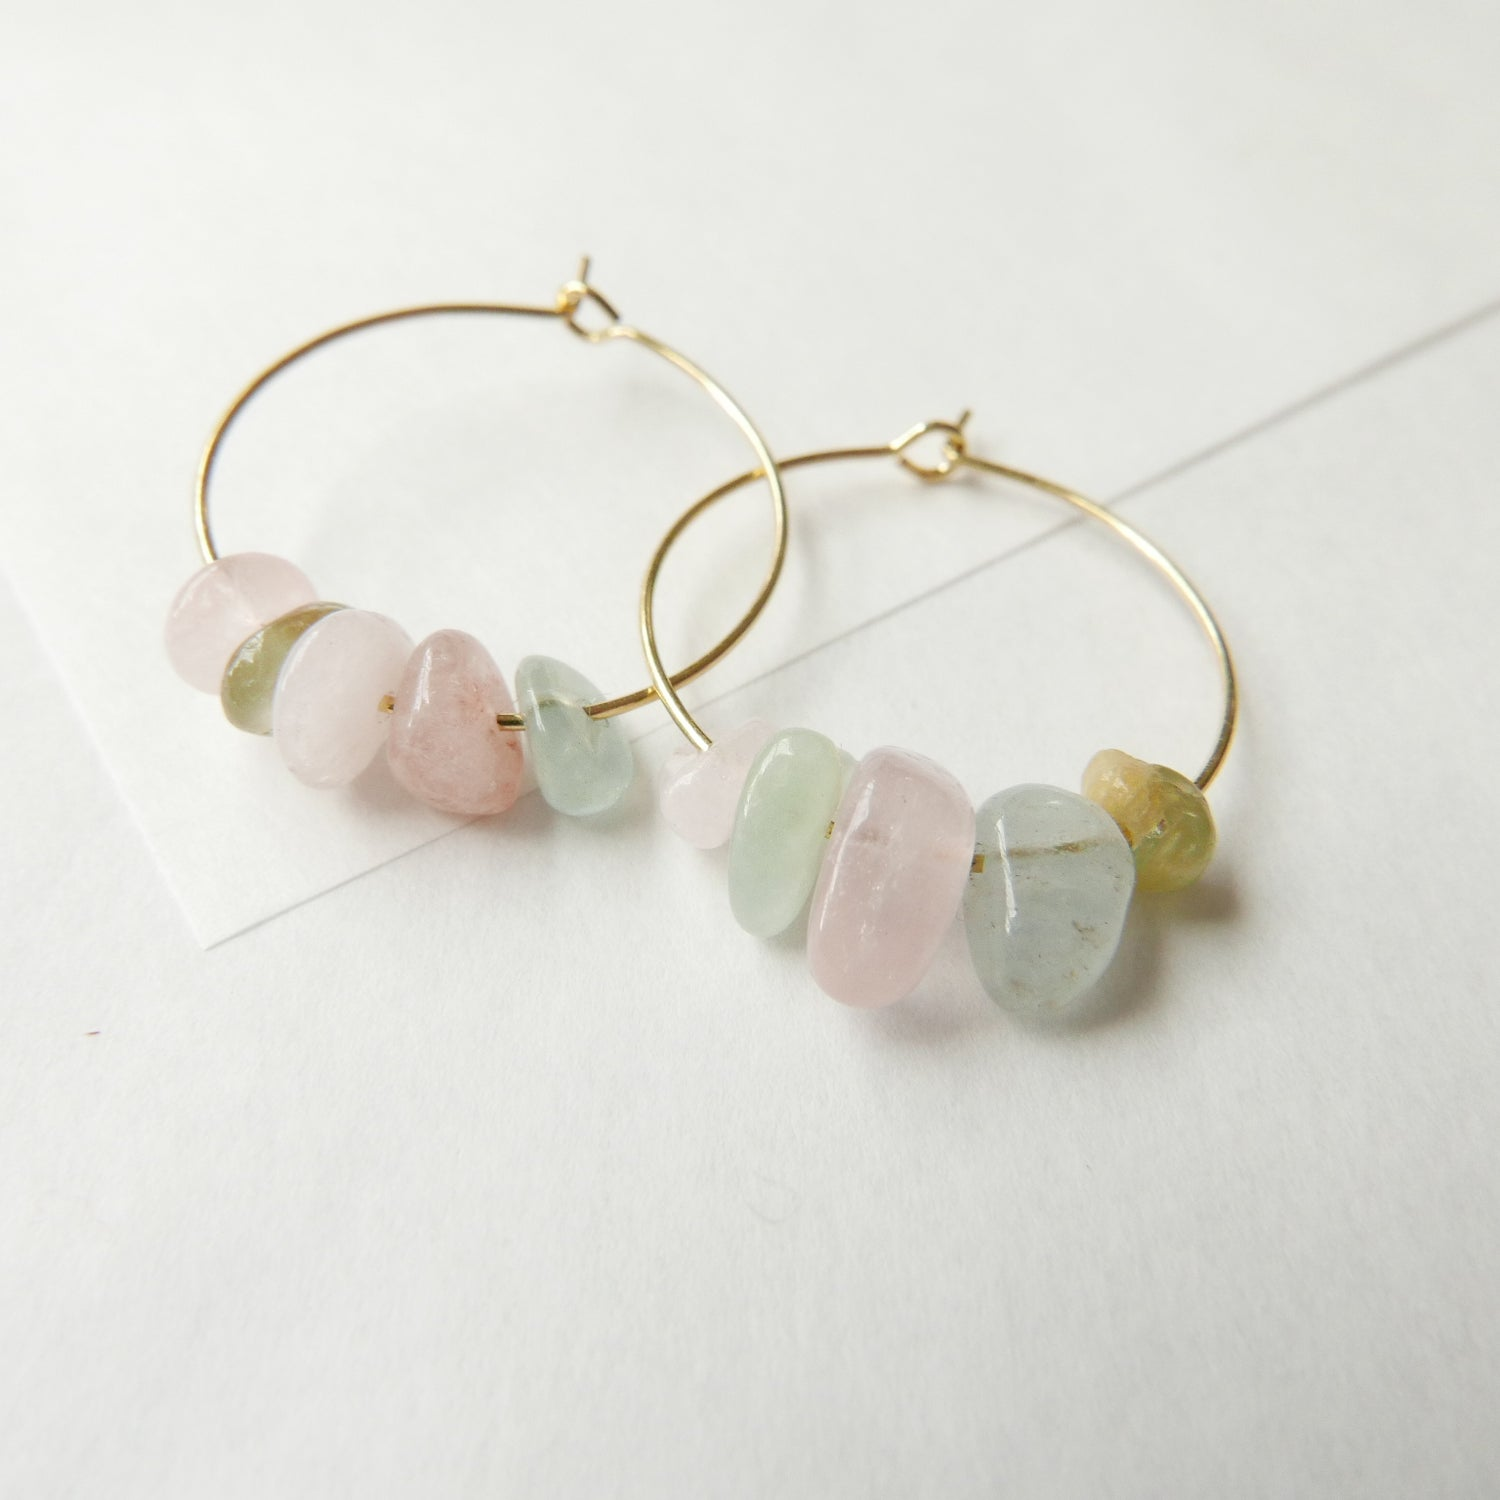 Image of Goodheart Gemstone Hoops - Morganite